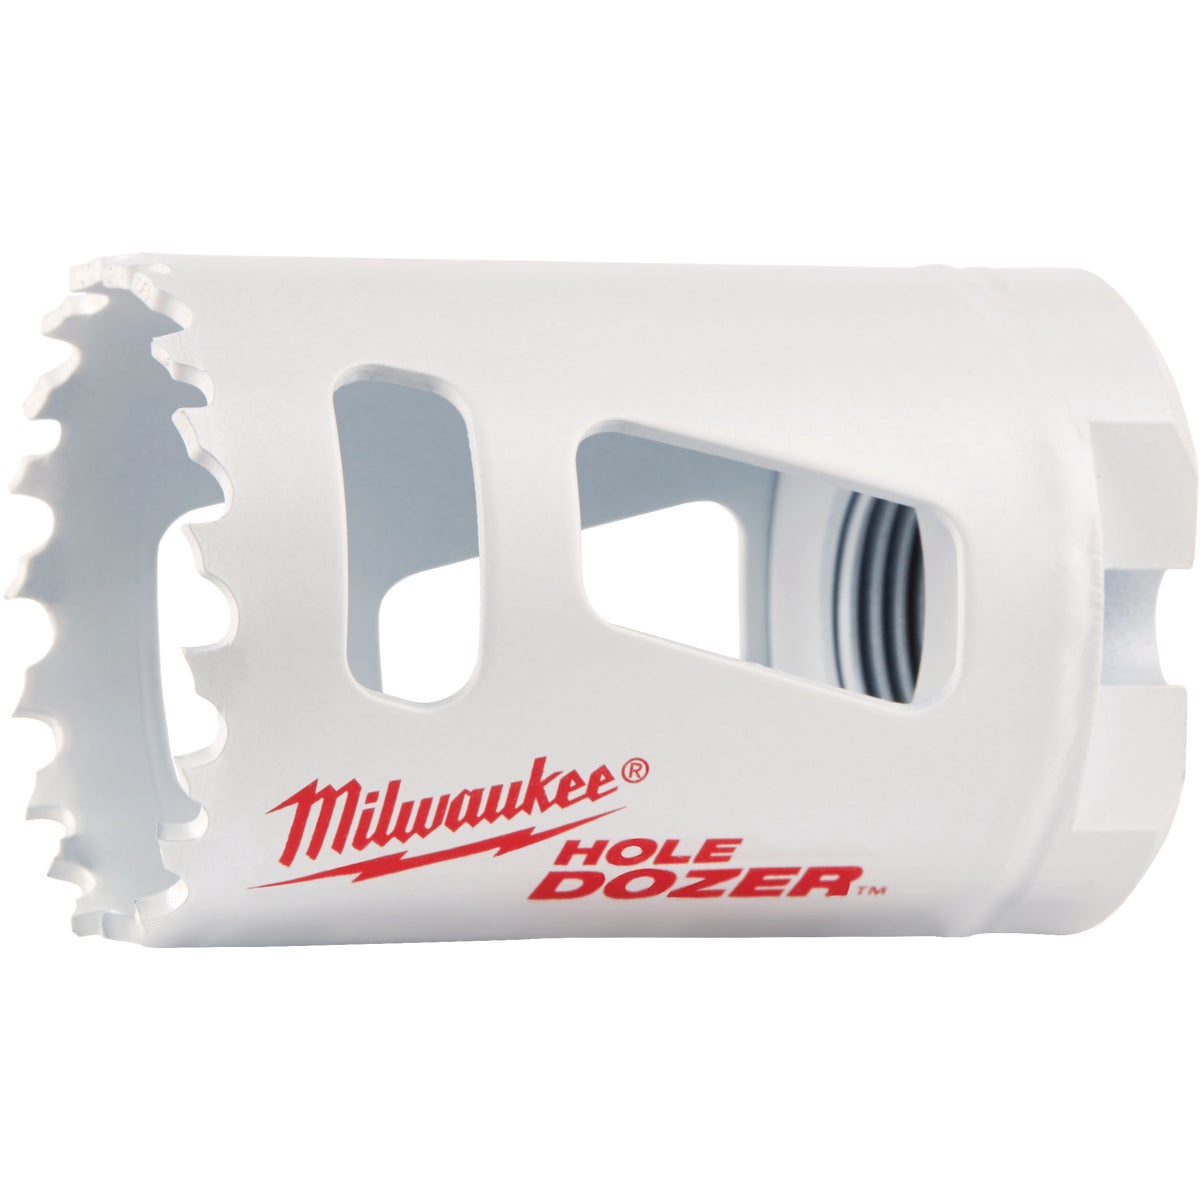 "3/4"" ICE HOLE SAW - 49-56-0023 by Milwaukee Accessory"